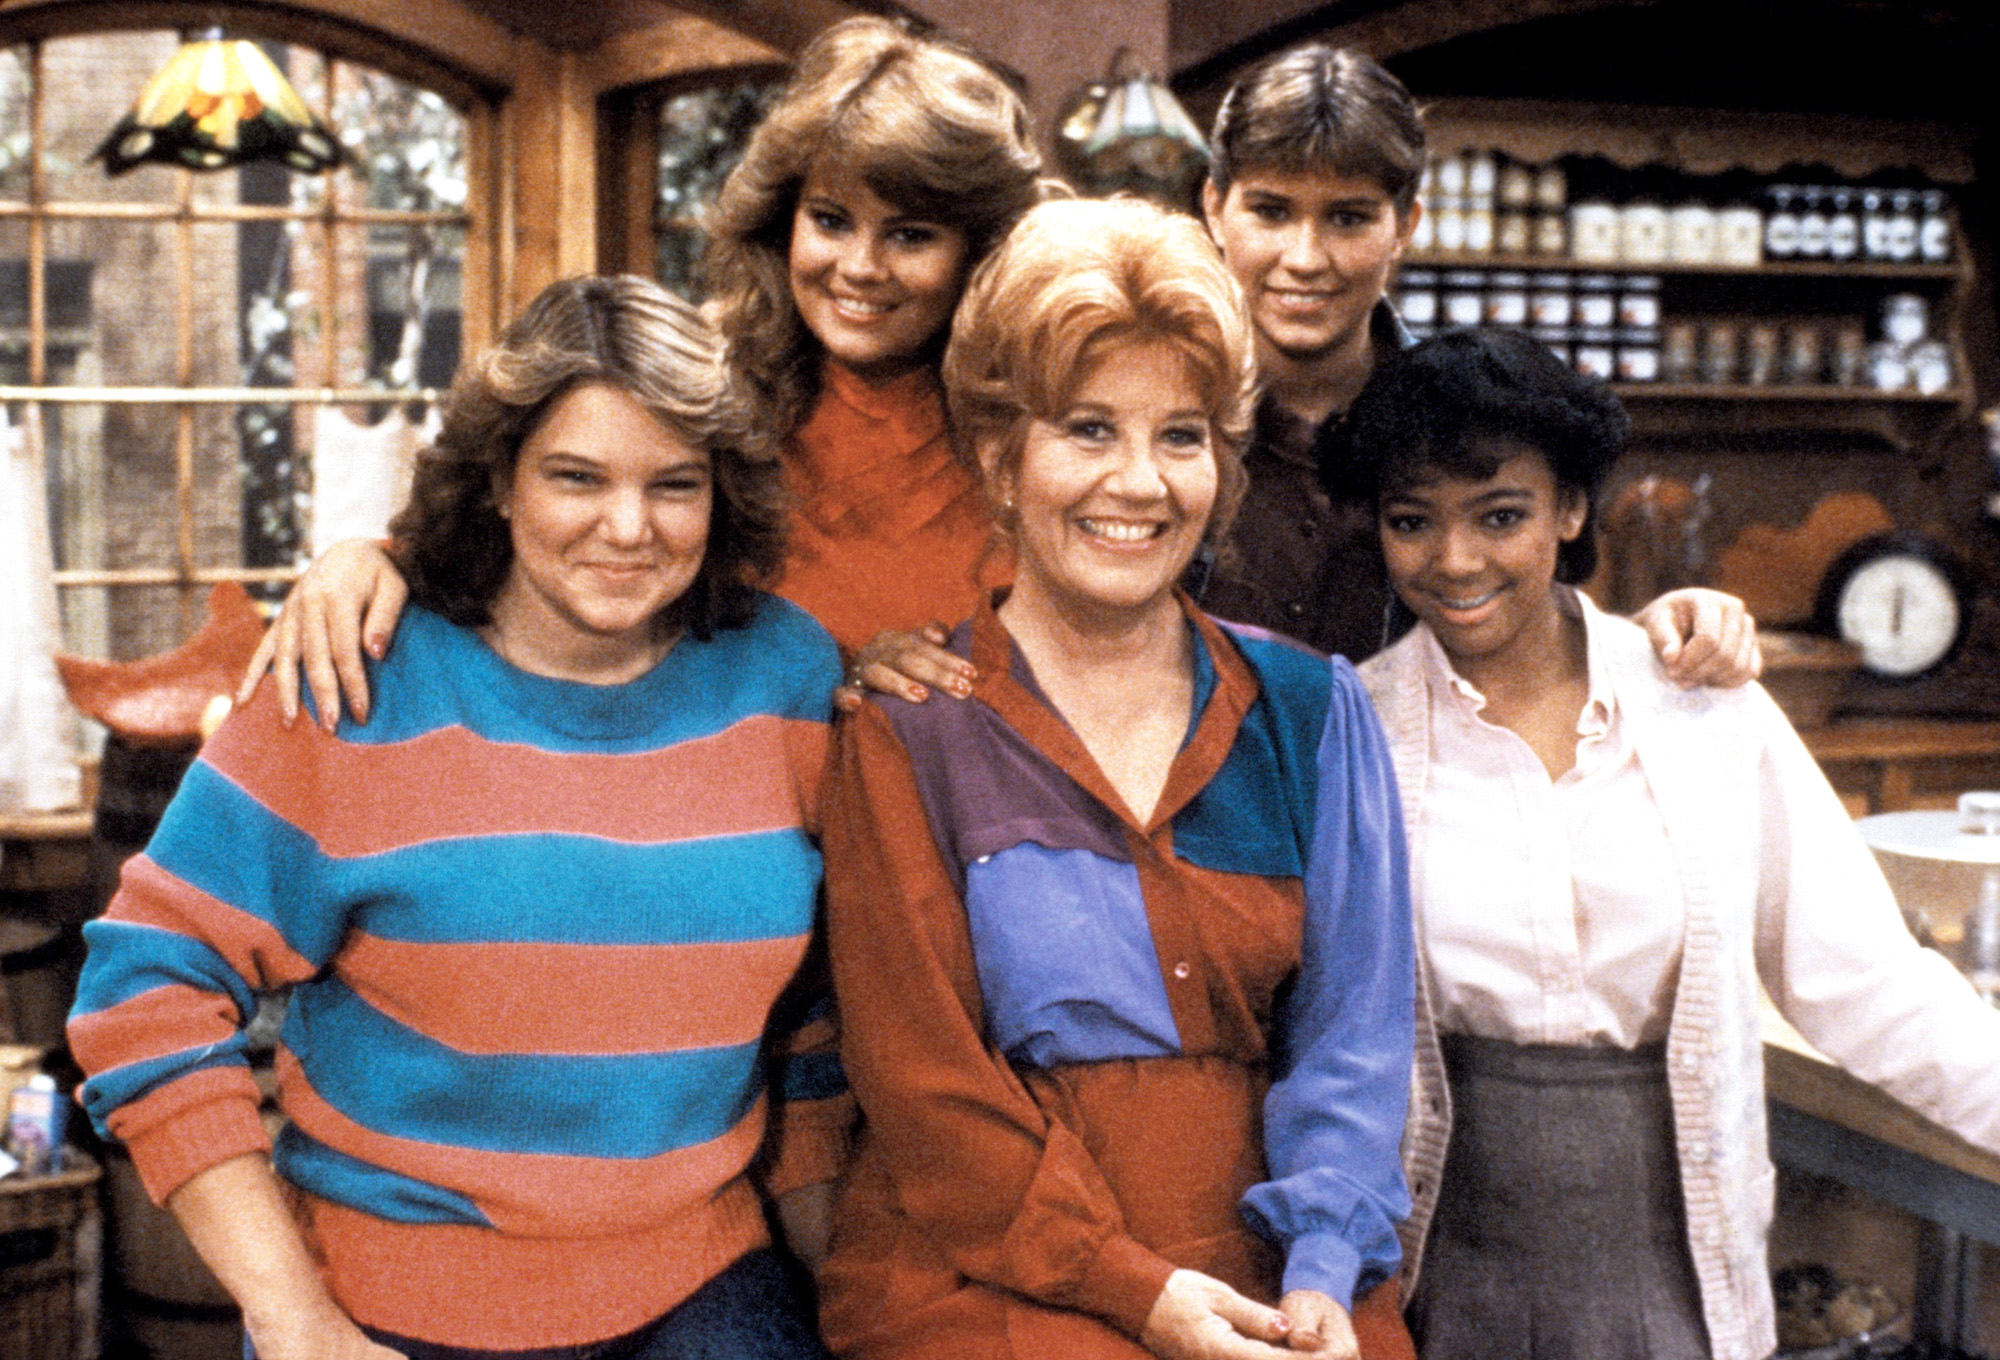 The girls of The Facts of Life